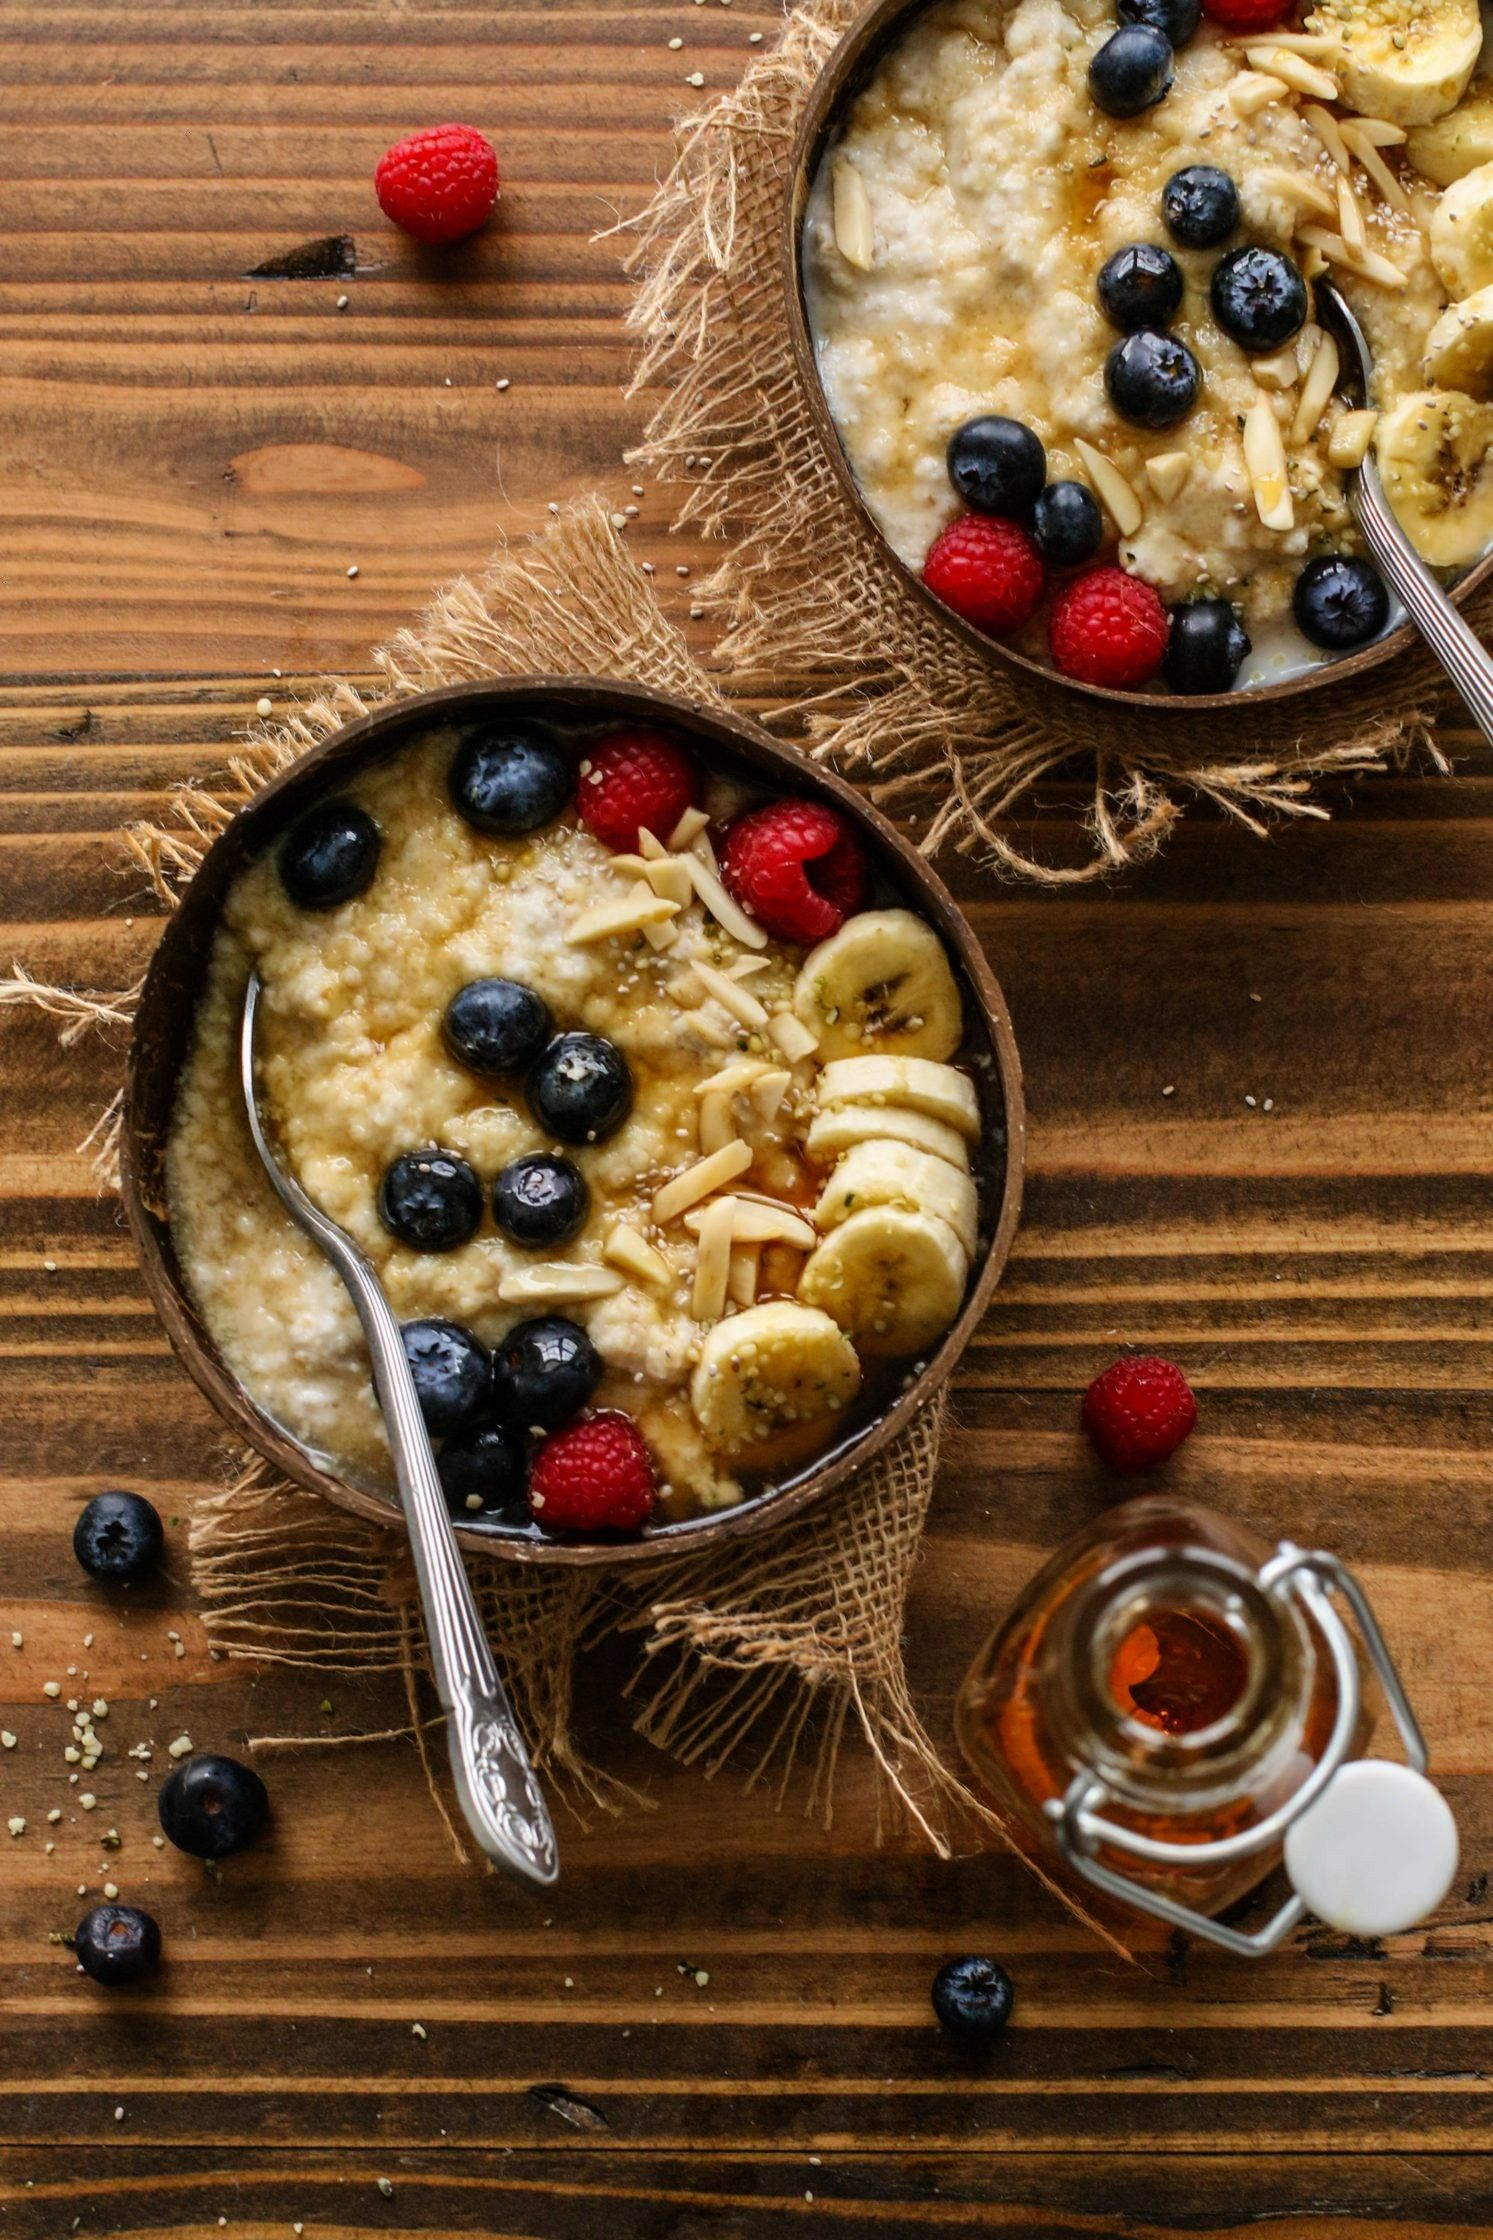 of No Wheat GrainFree  Flora  Vino  Easy grainfree porridge thats gluten free paleo vegan and Whole30approved Perfect as an al Cream of No Wheat GrainFree  Flora  Vino  E...